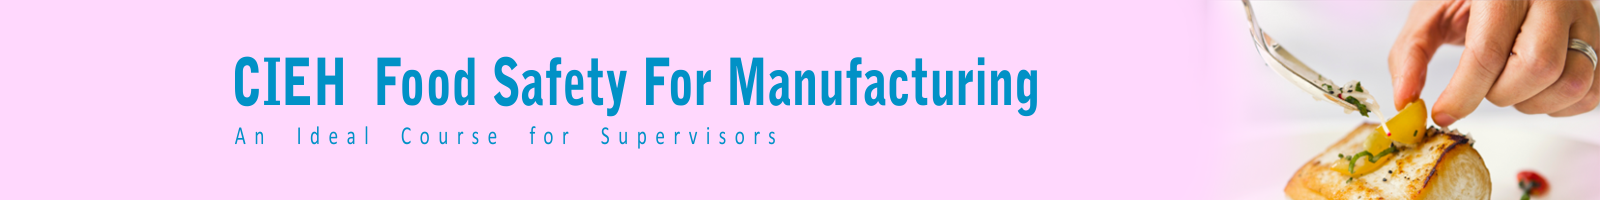 Cieh Level 2 Food Safety Course In Manufacturing In